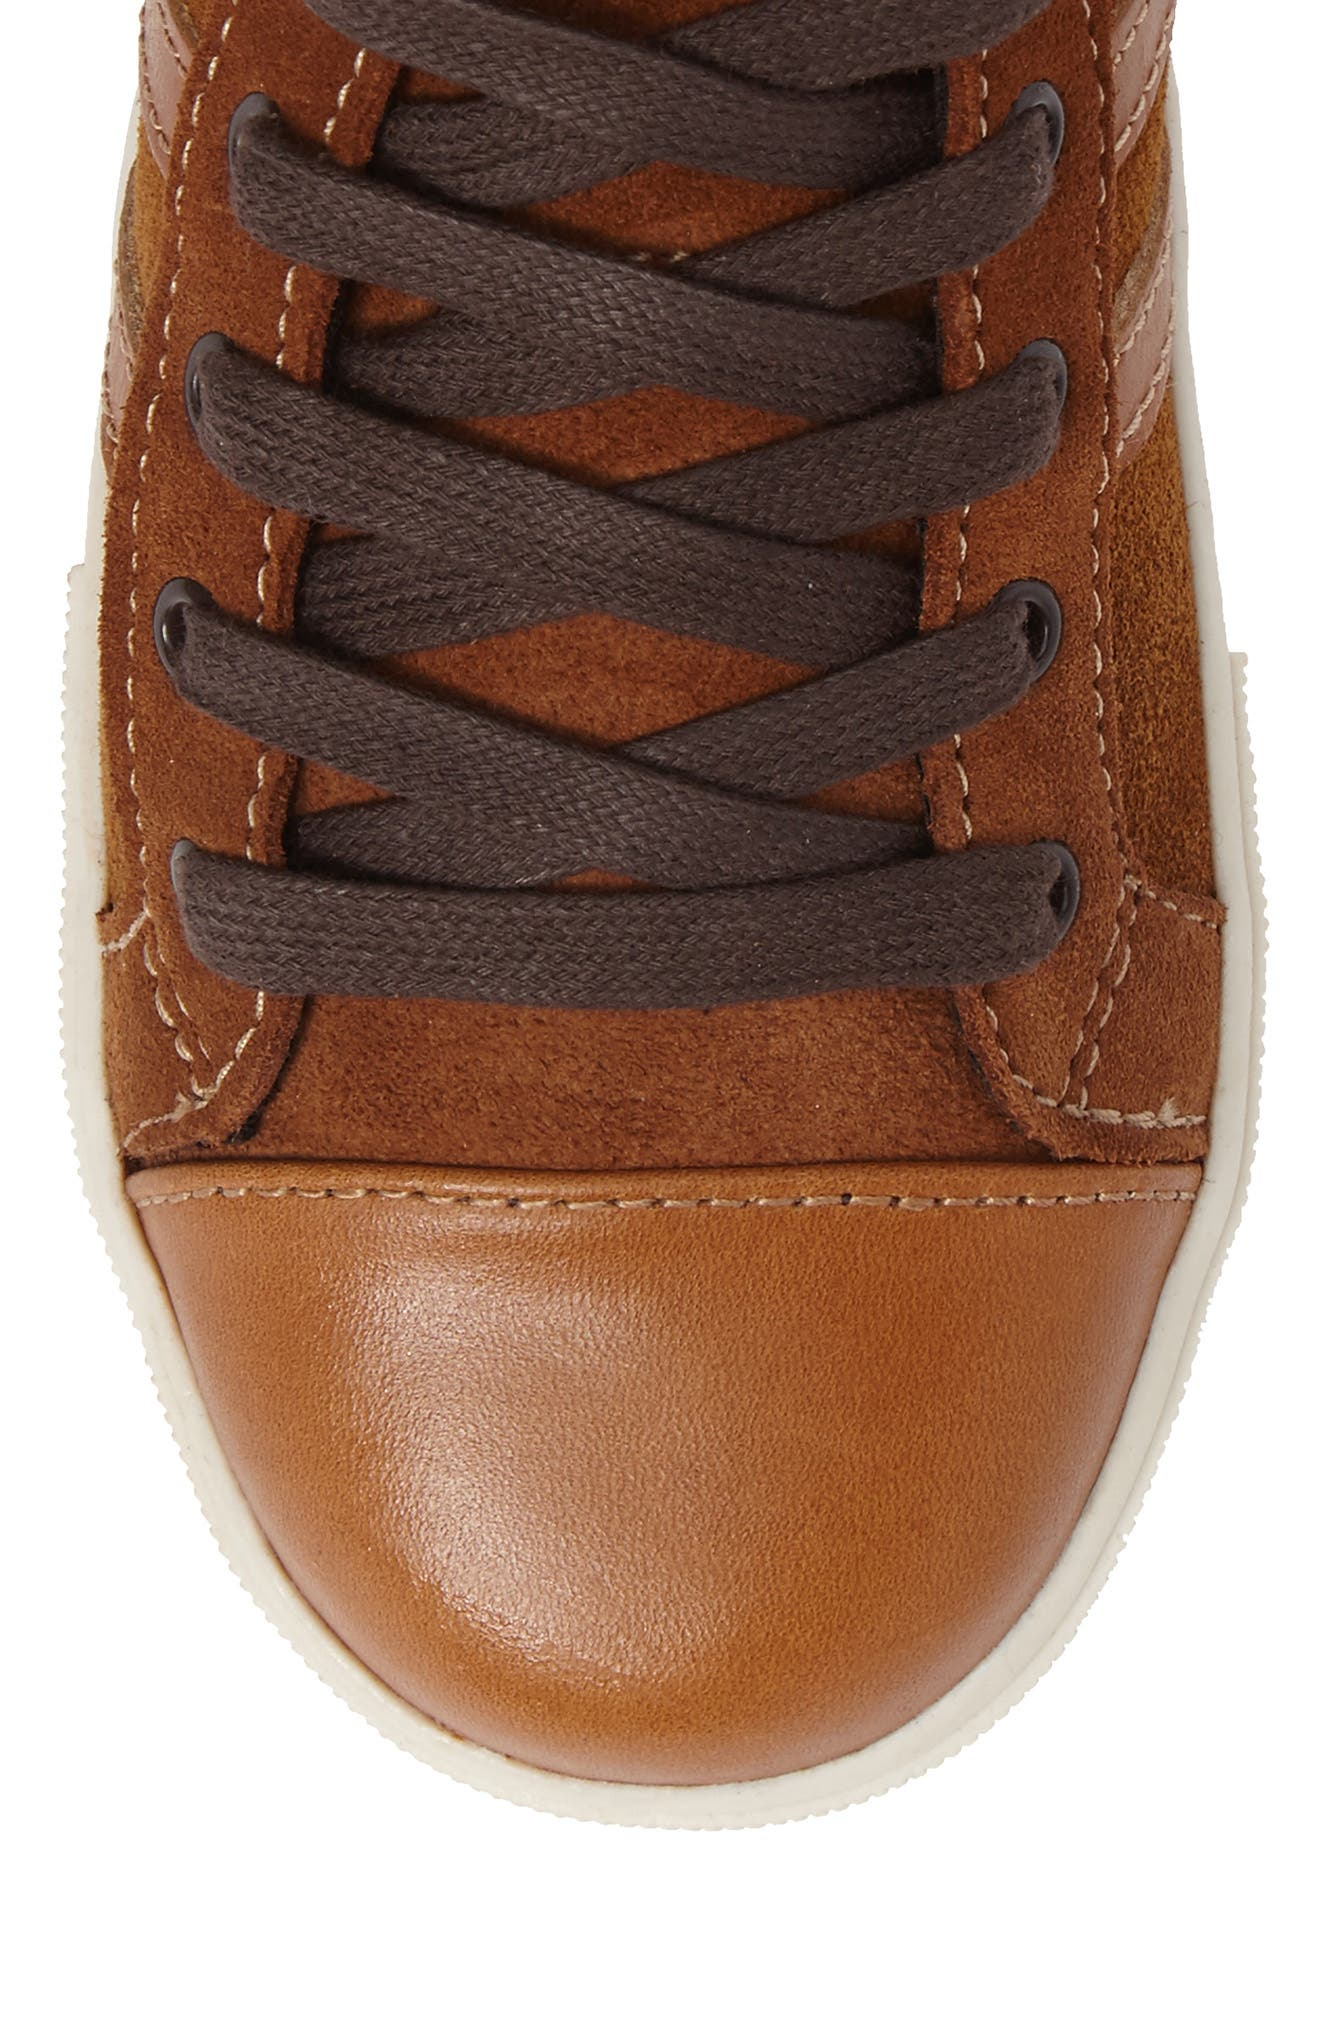 Jay Top High-Top Zip Sneaker,                             Alternate thumbnail 5, color,                             Cognac